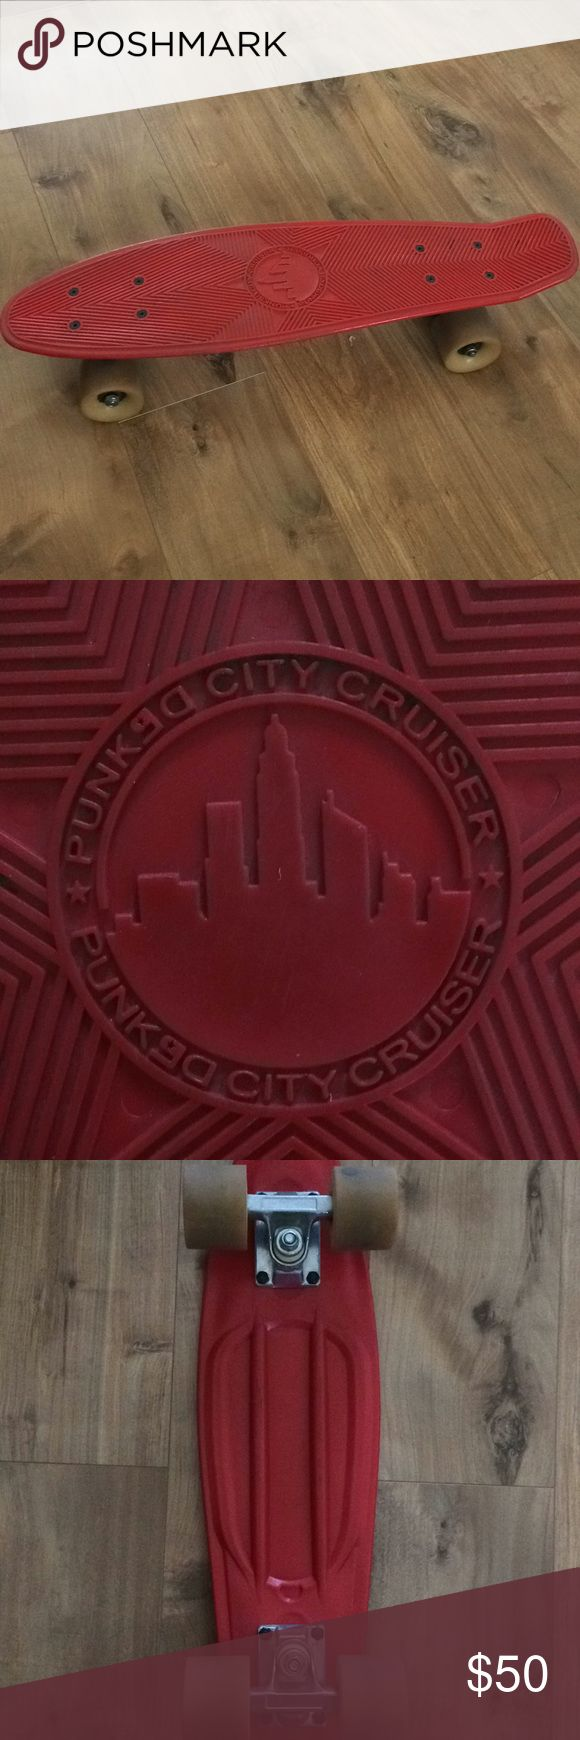 Penny Board red Punked City Cruiser Accessories